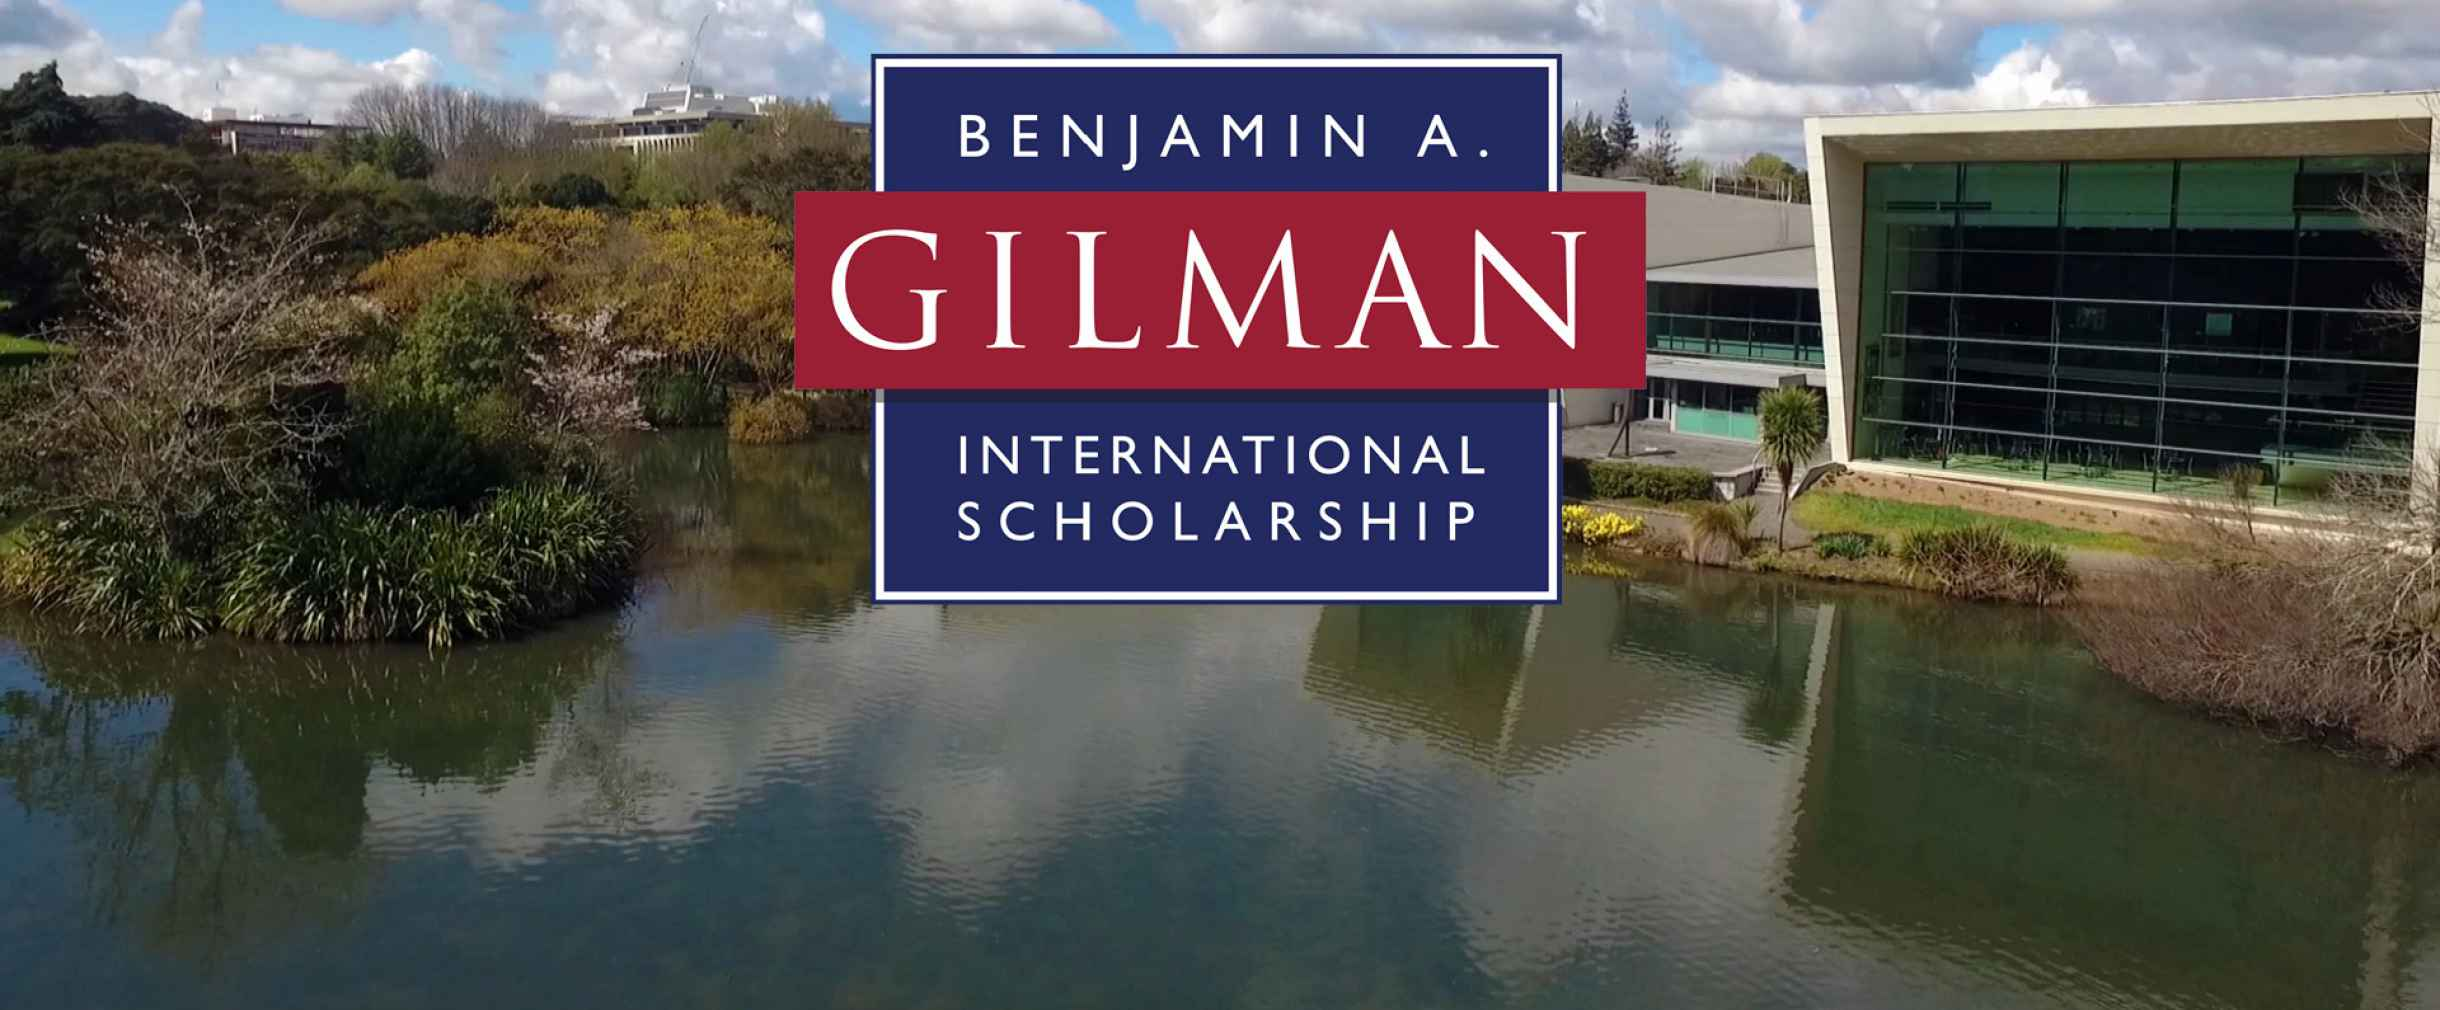 Background contains a lake with buildings along the shore and foreground contains the logo for Benjamin A. Gilman International Scholarship